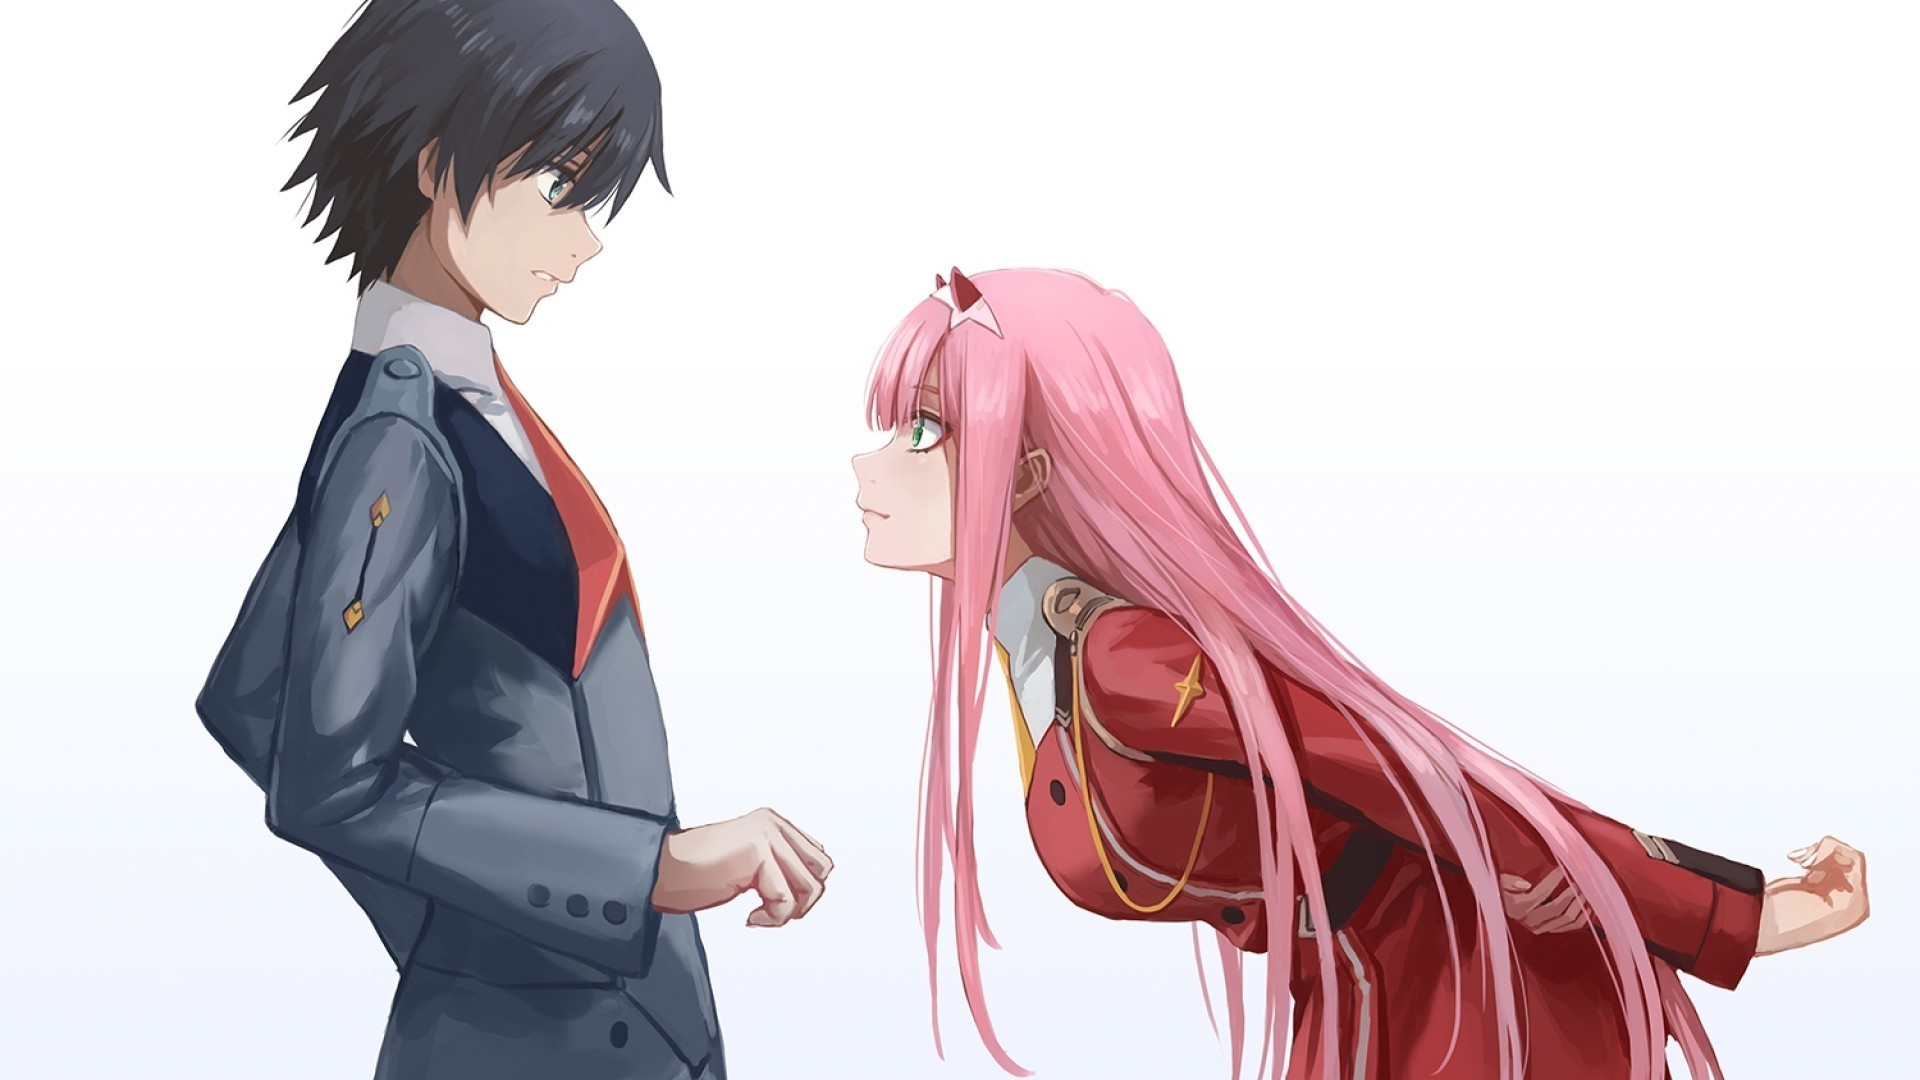 Res: 1920x1080, Anime Couple Wallpaper For Android Phone Anime Radius